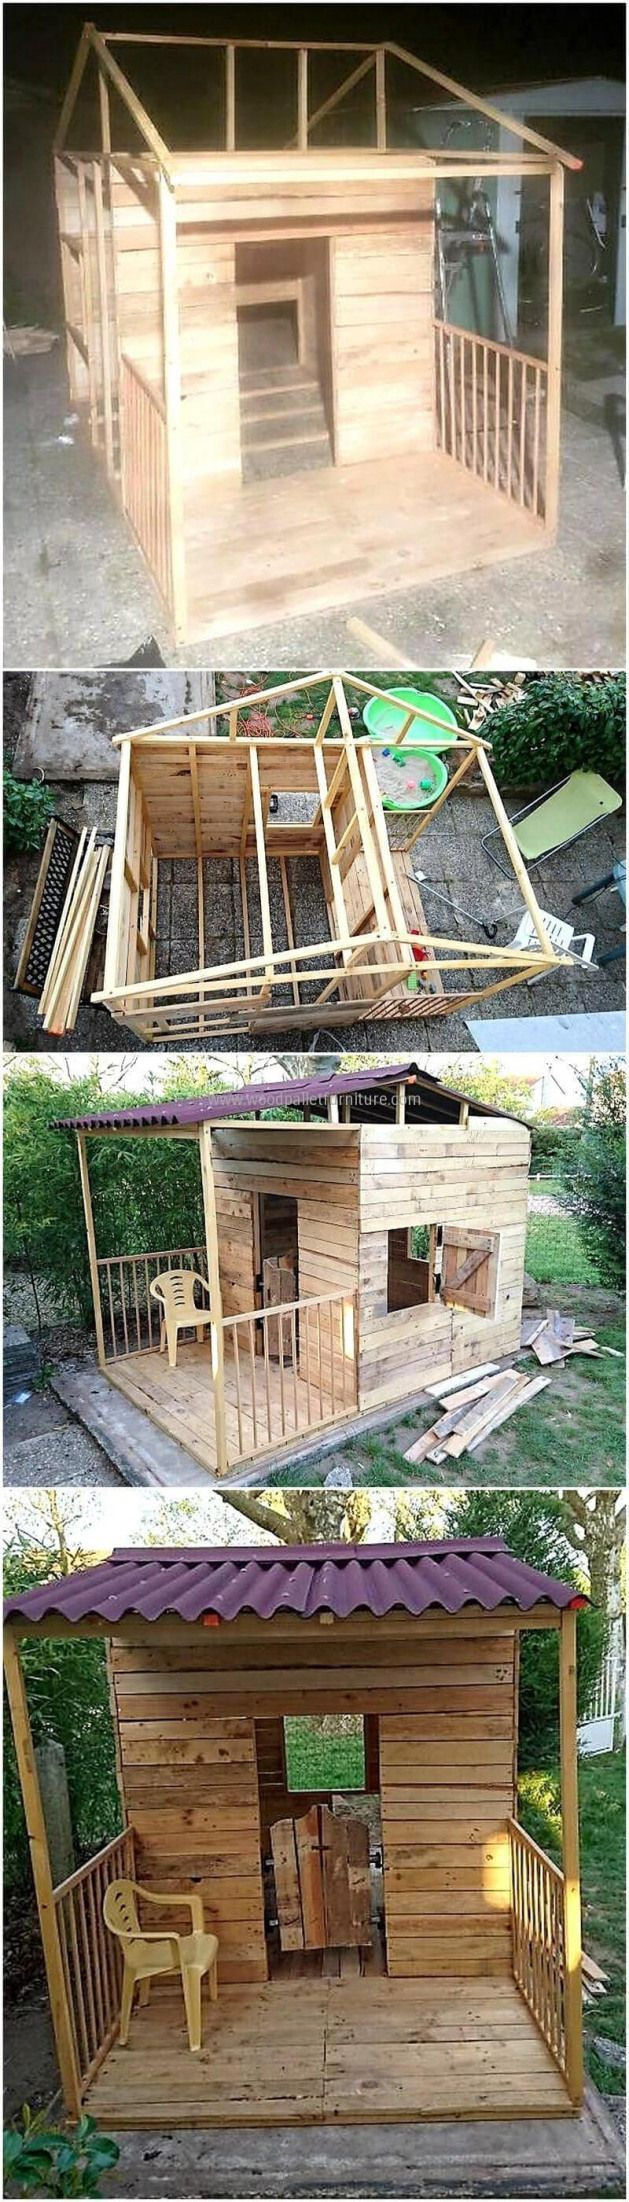 Craft patio play house for your kids in economical way Crafting an art from the